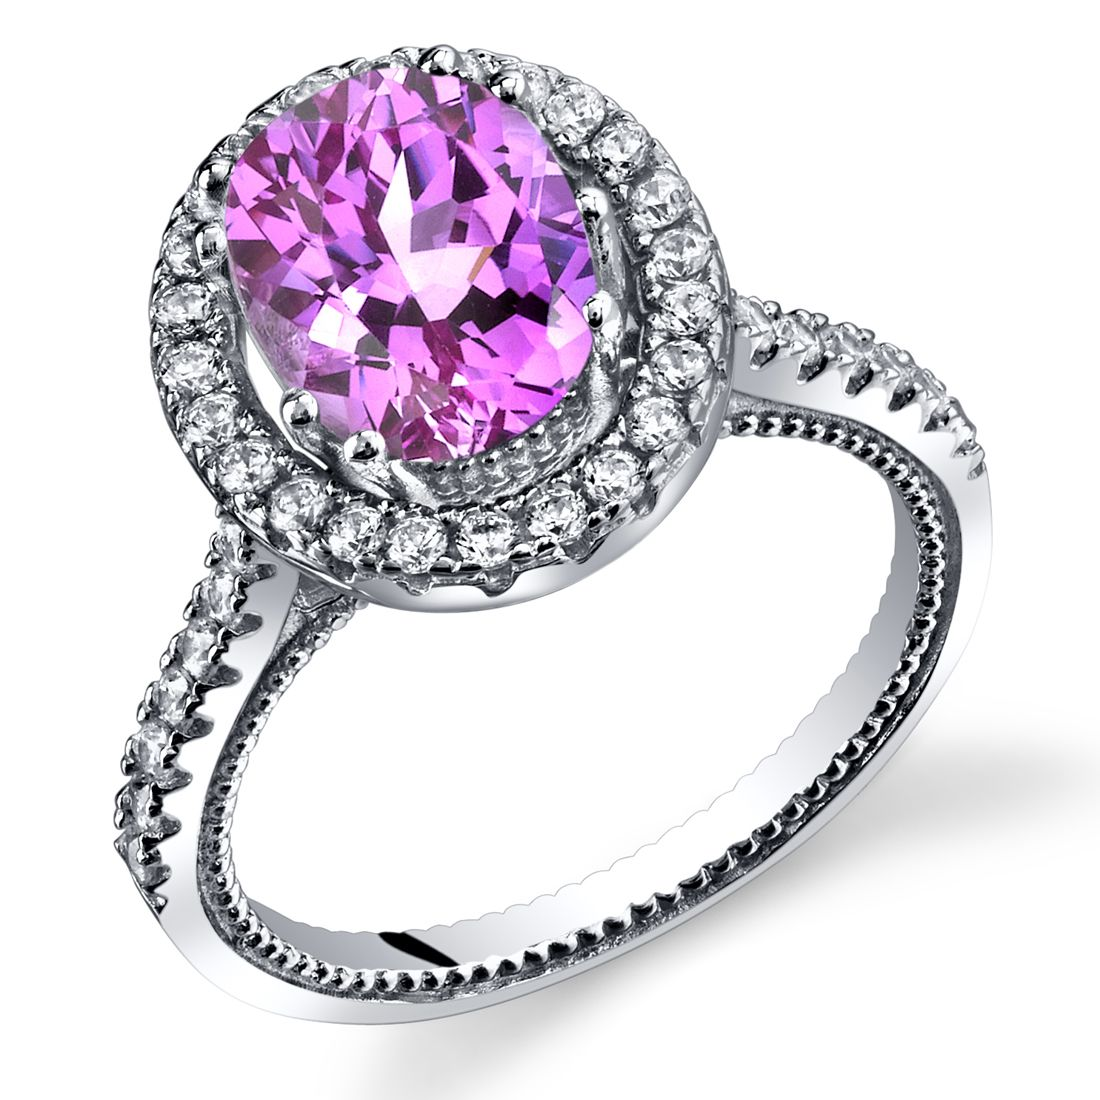 Womenus sterling silver pink sapphire oval halo ring with milgrain